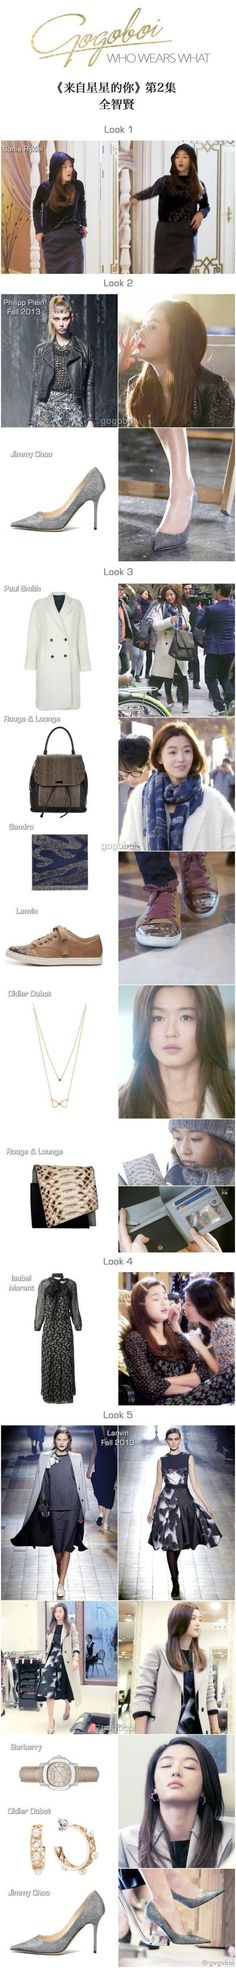 Song Yi fashion